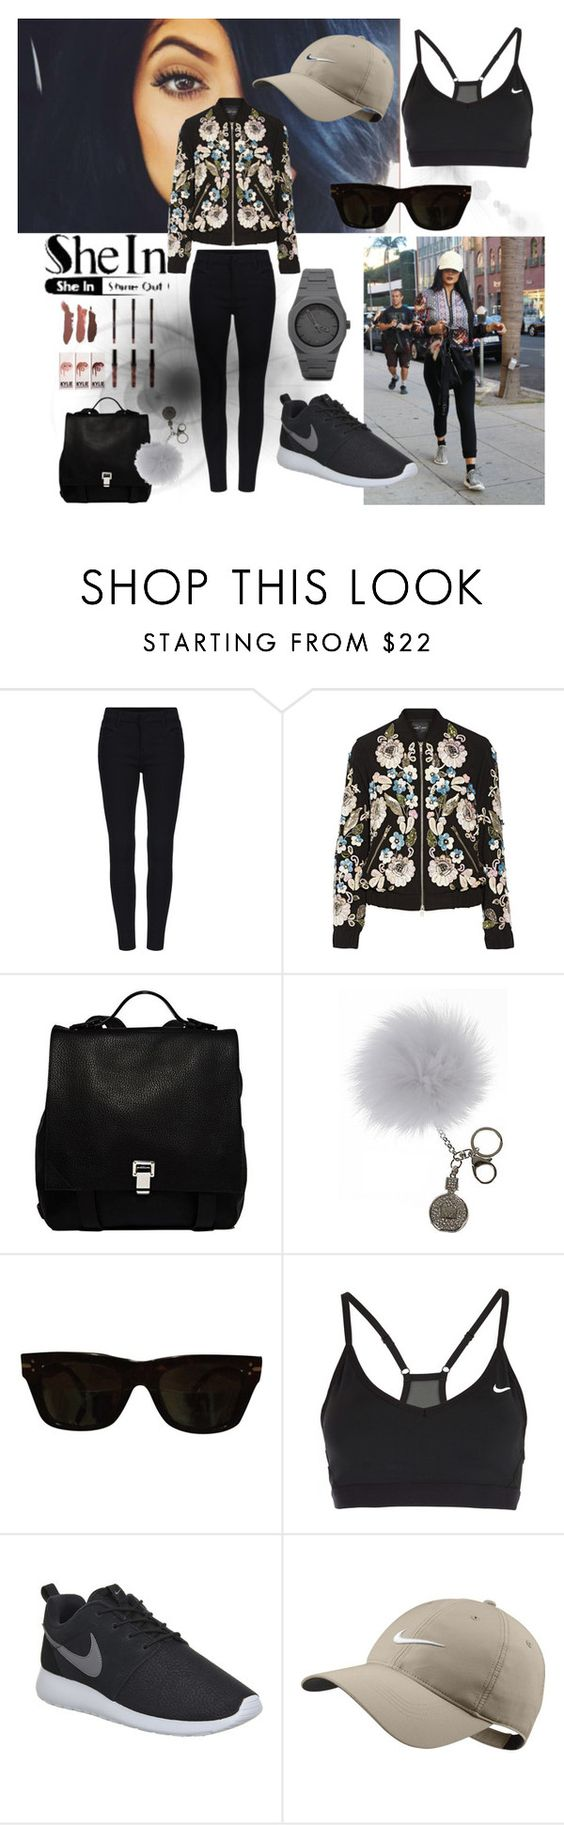 """Shein Contest"" by juliamella on Polyvore featuring Needle & Thread, Proenza Schouler, Overland Sheepskin Co., CÉLINE, NIKE, Kendall + Kylie, CC, women's clothing, women's fashion and women"